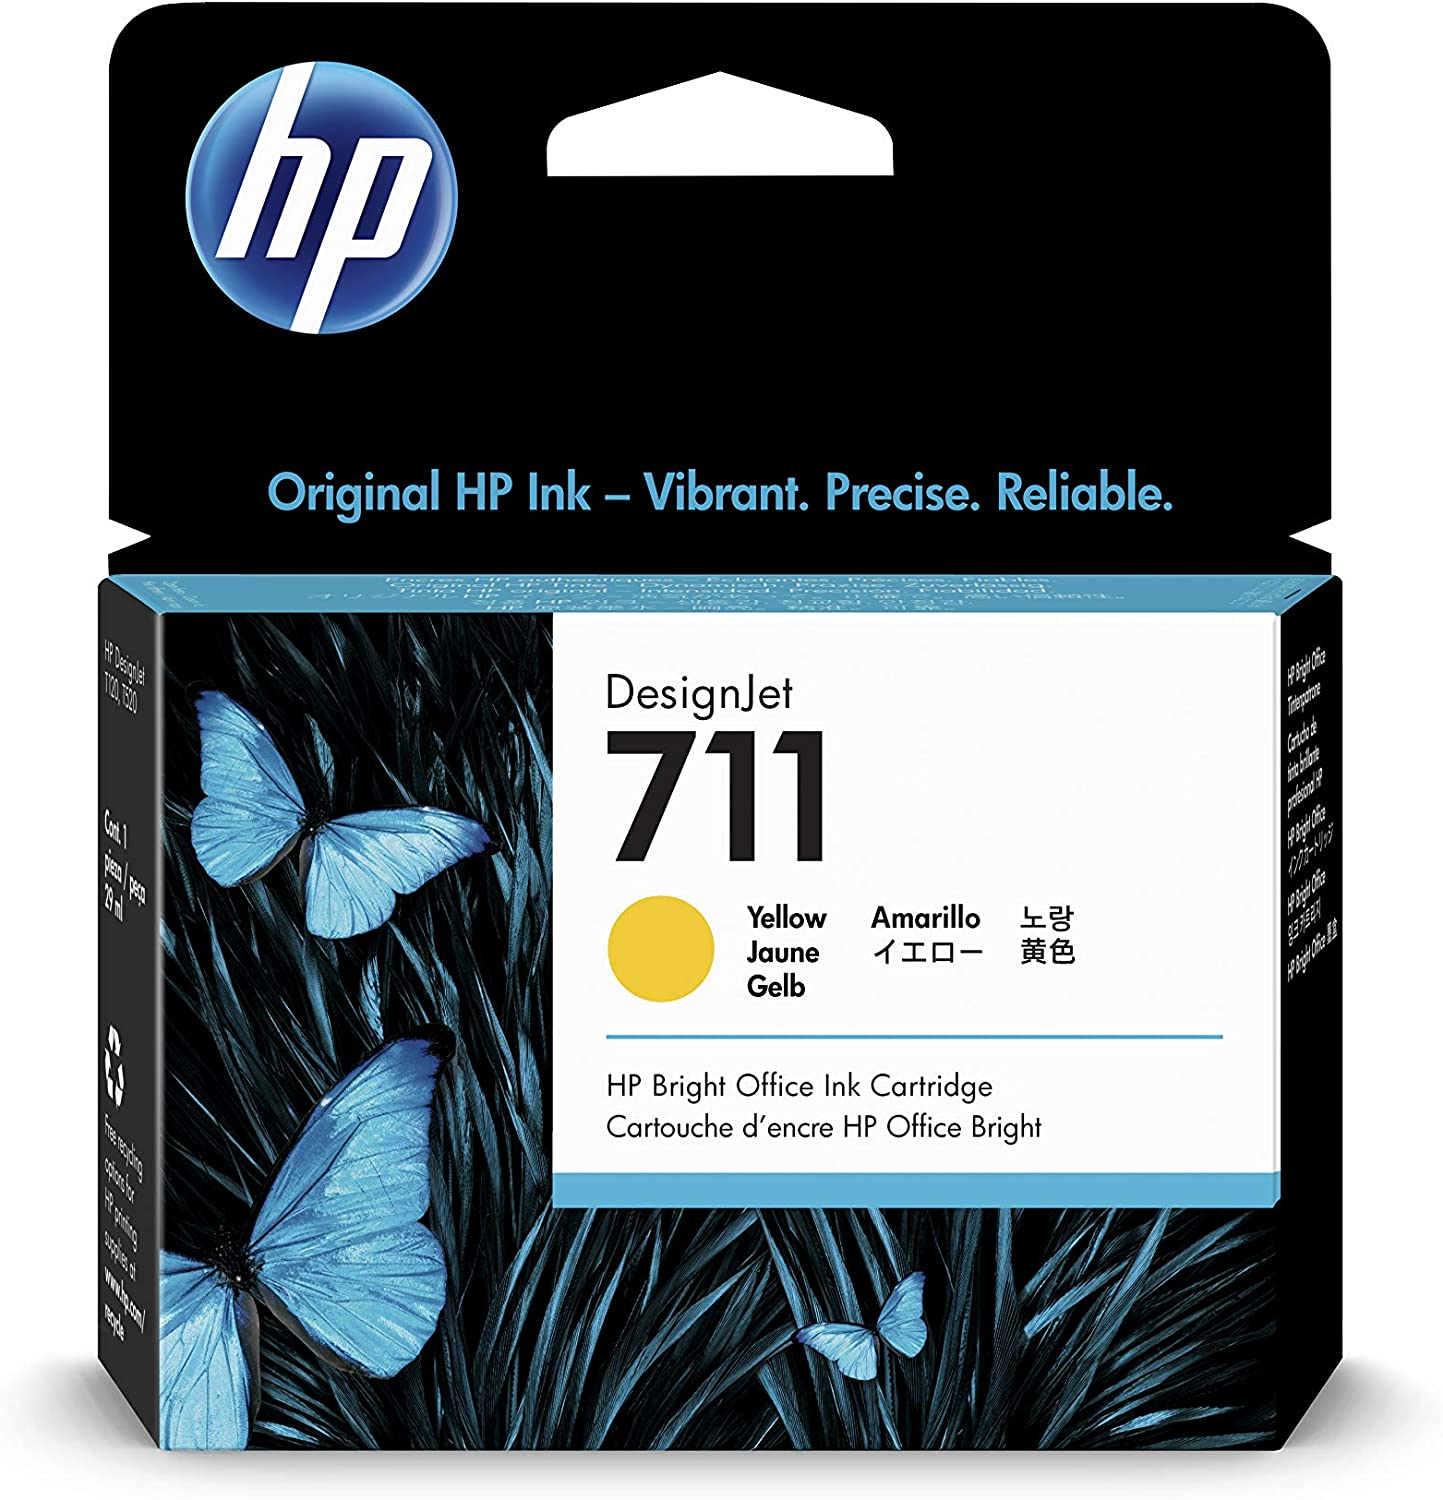 HP 711 Yellow 29-ml Genuine Ink Cartridge (CZ132A) for DesignJet T530, T525, T520, T130, T125, T120 & T100 Large Format Plotter Printers